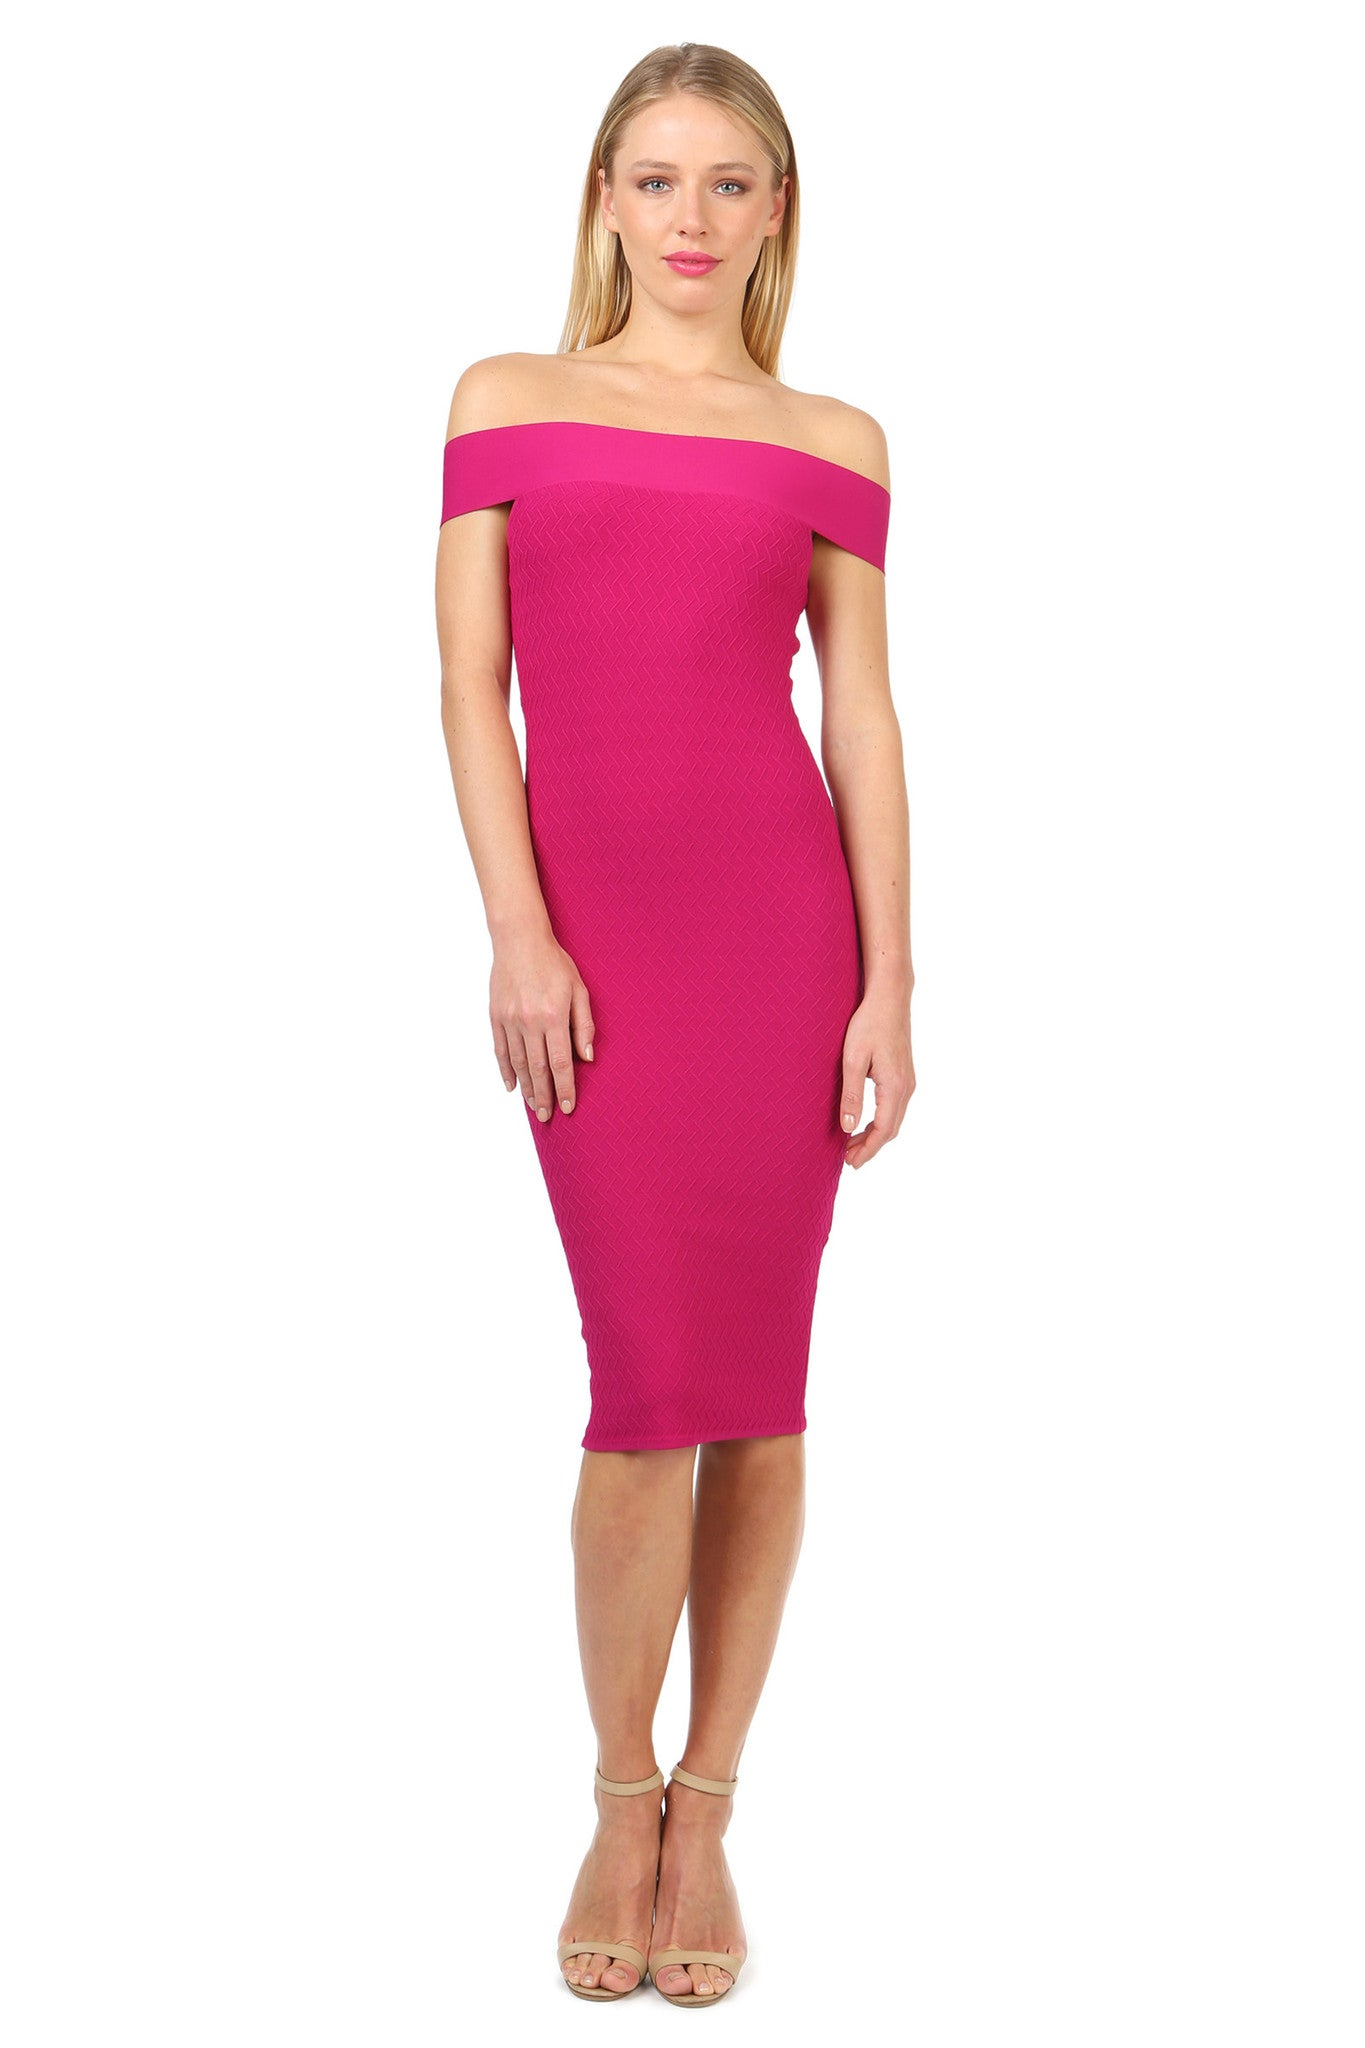 Jay Godfrey Fuschia Body-Con Dress - Front View